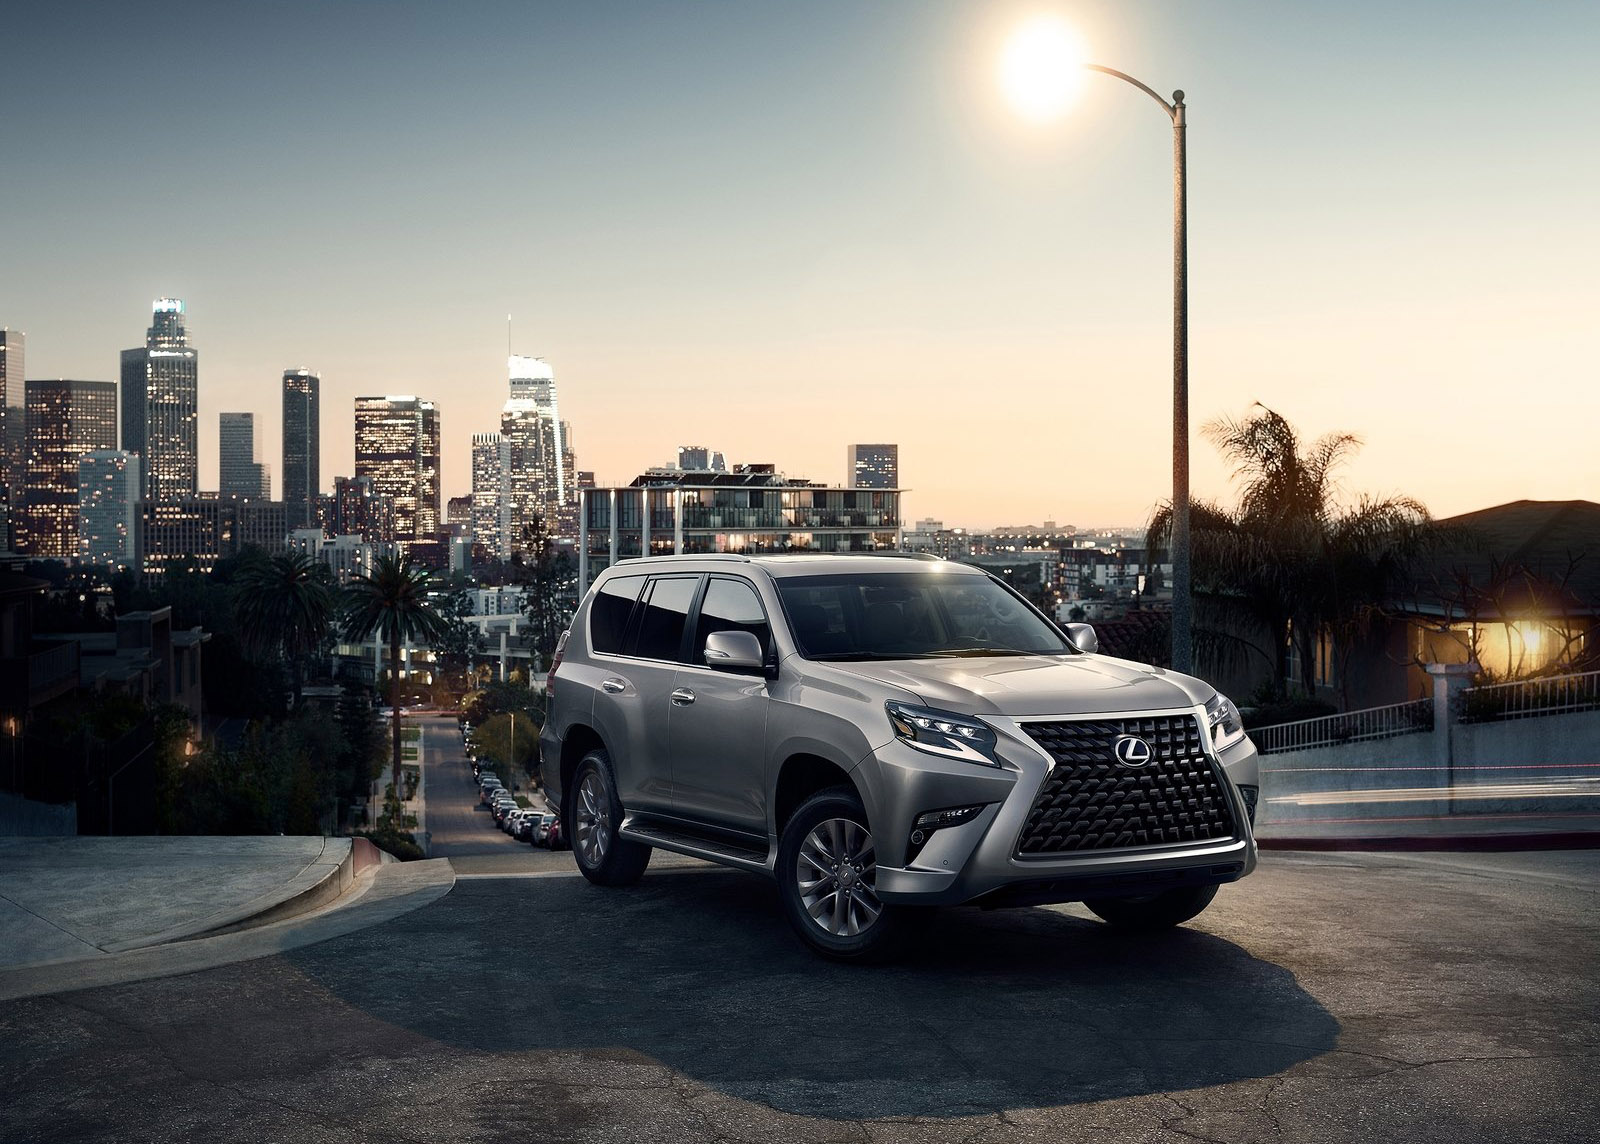 2021 Lexus Gx Price and Review